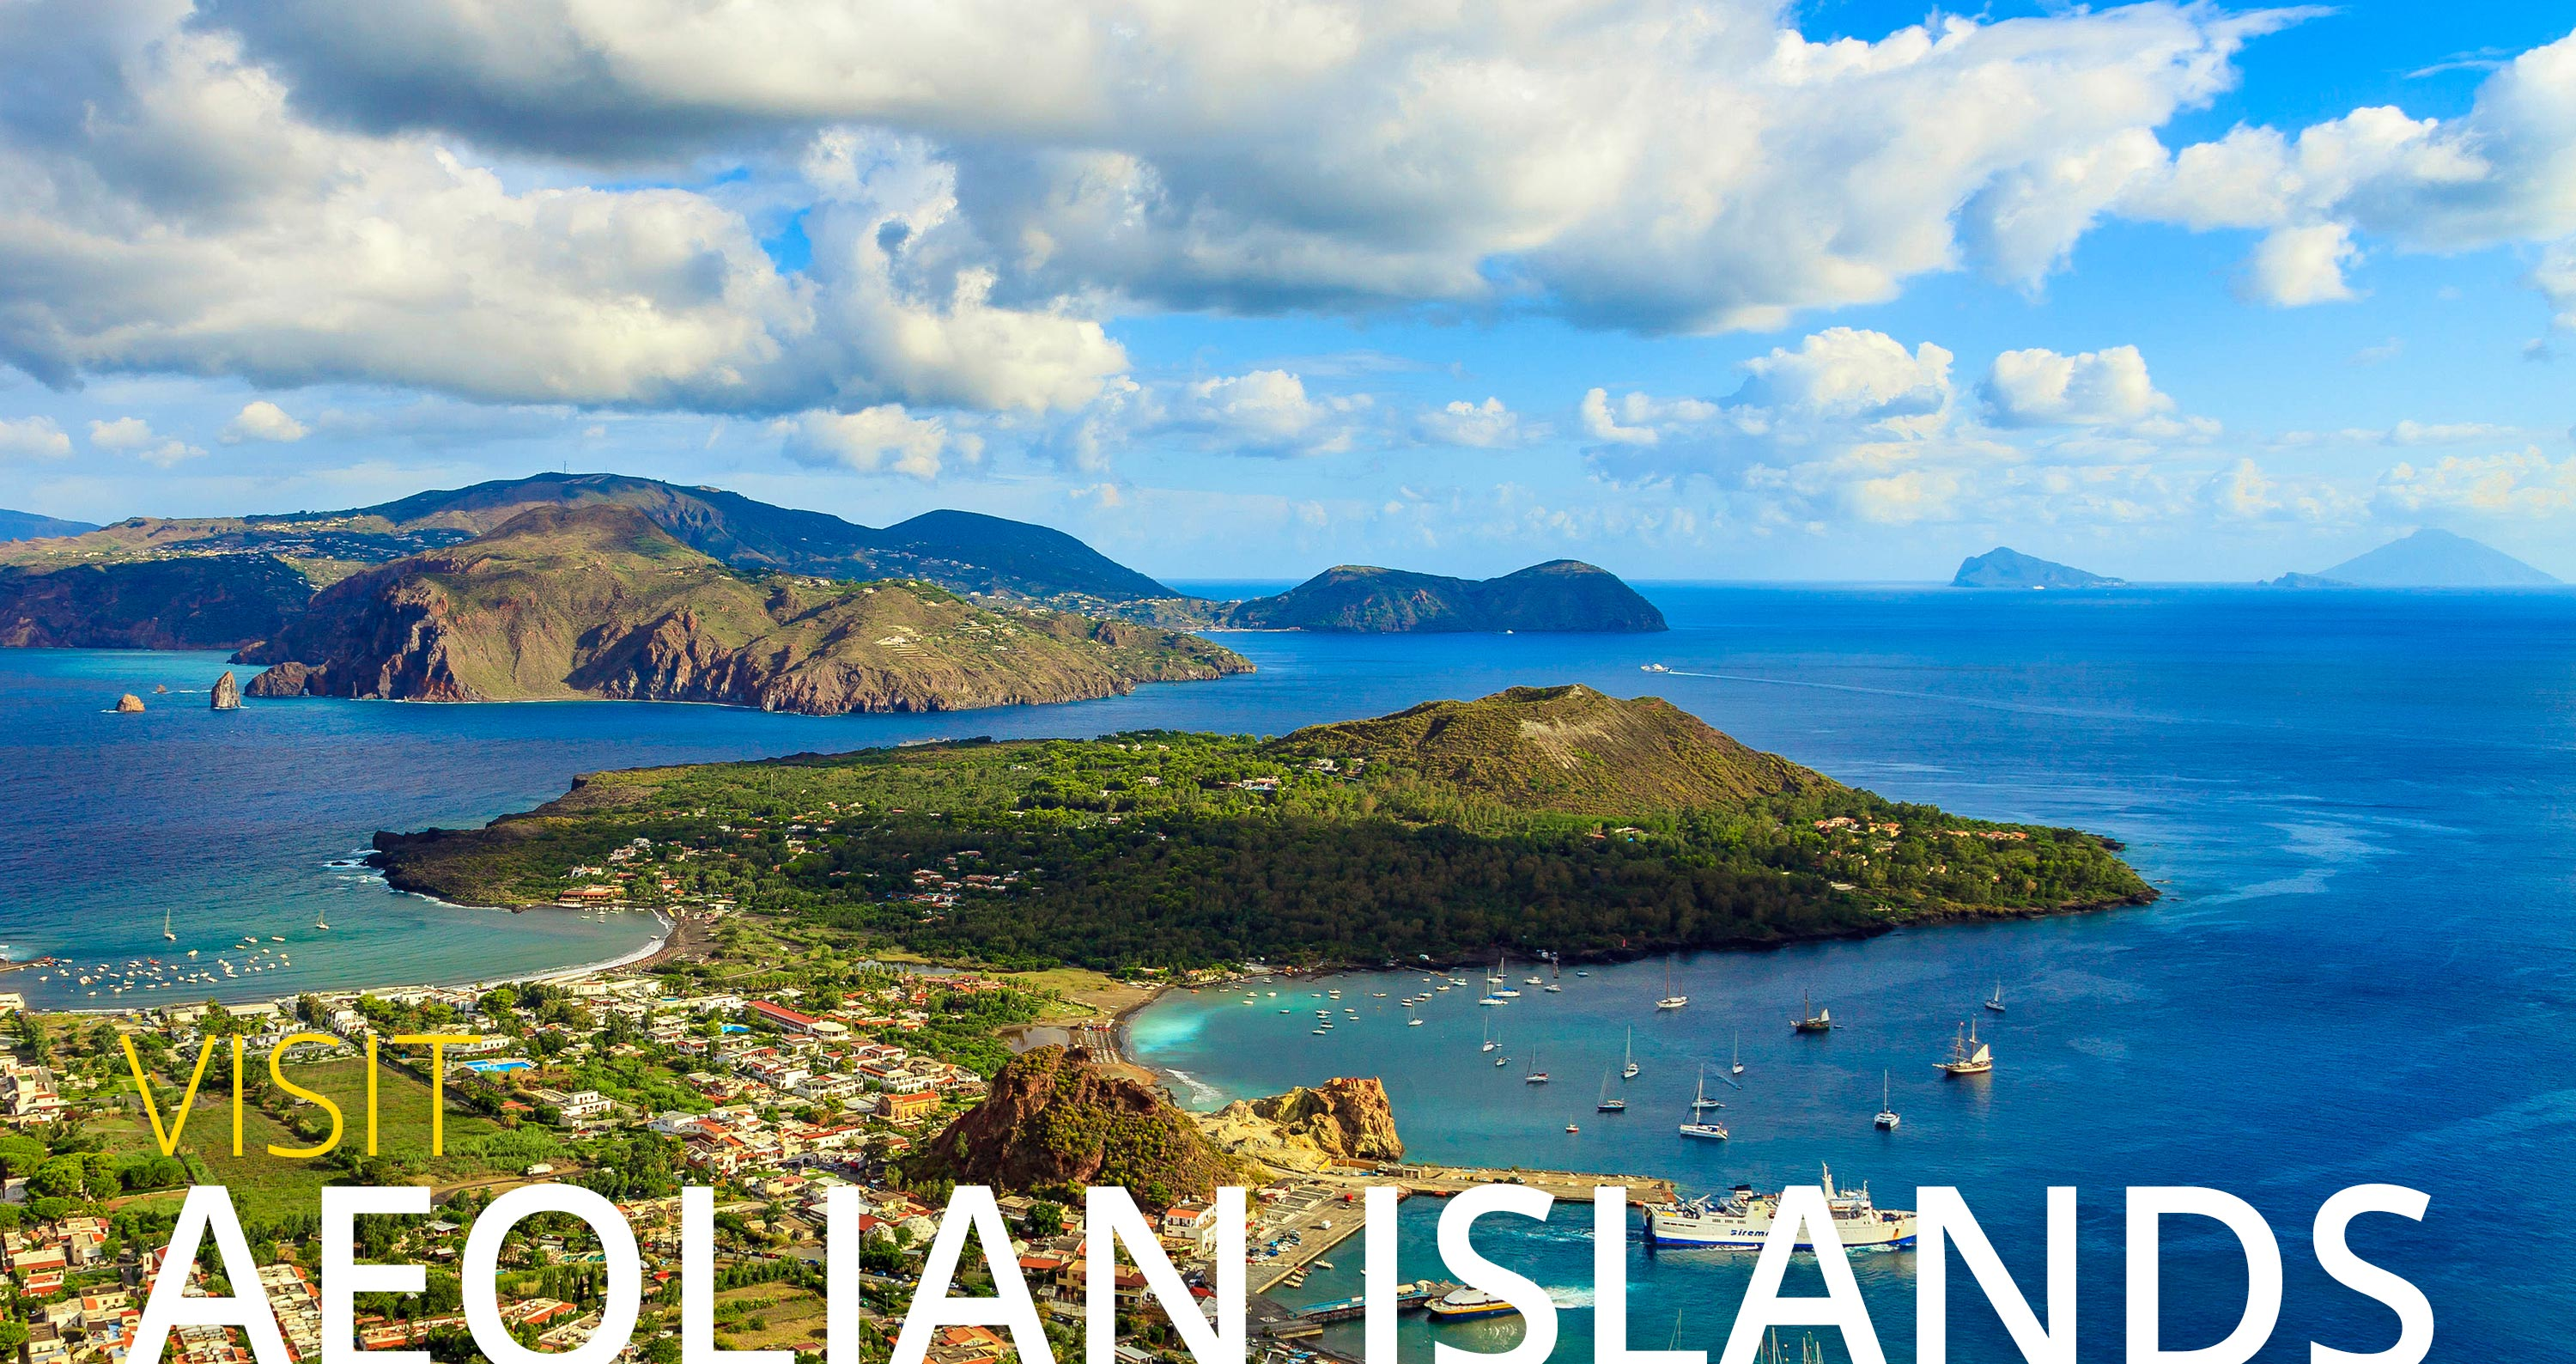 Aeolian islands sicily for Salina sicily things to do